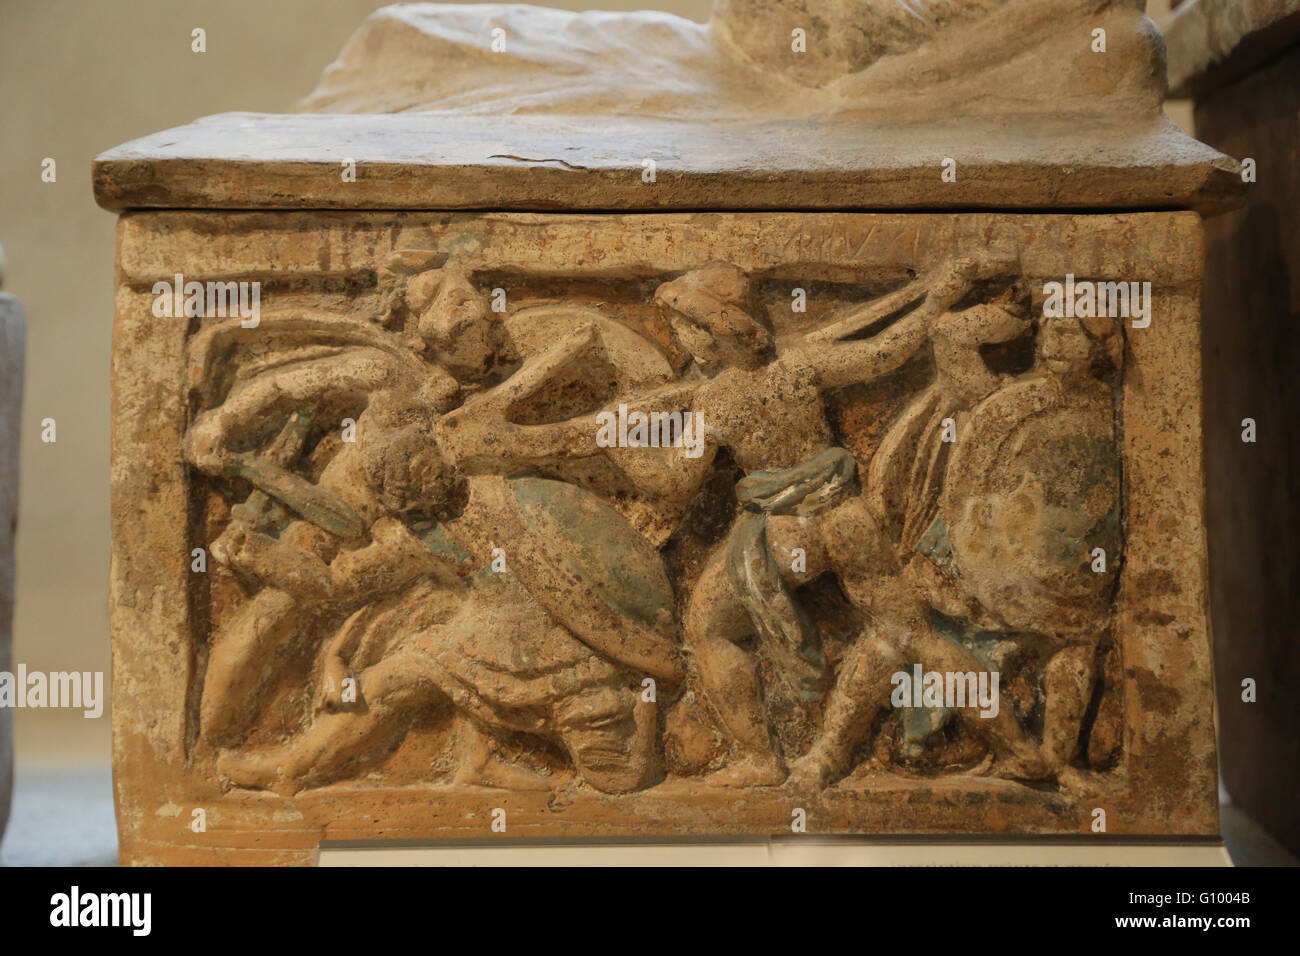 Etruscan cinerary urn. Hero fighting with a plow. Chiusi, Italy. 2nd c. BC. Terracotta. Louvre Museum. Paris. France. - Stock Image